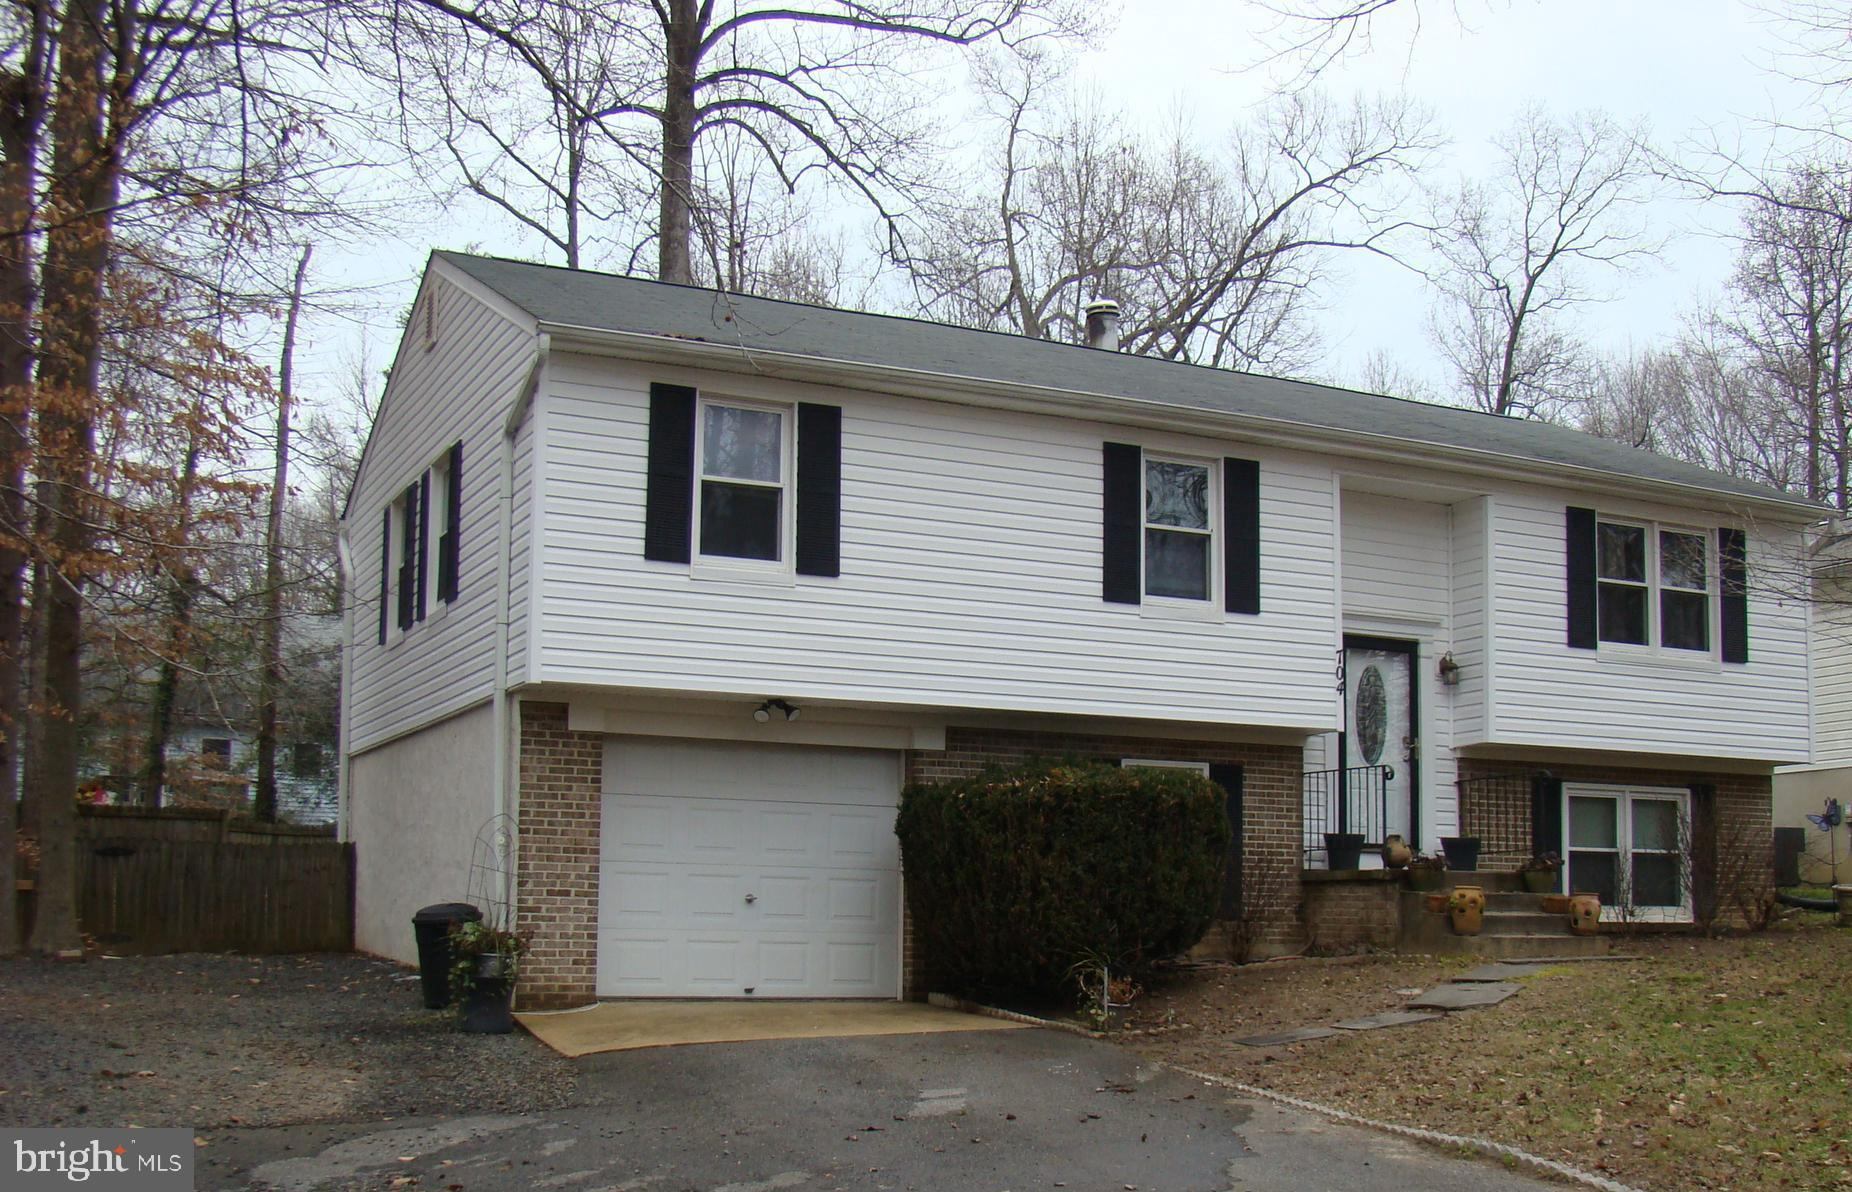 WELL MAINTAINED NICELY UPDATED Split Foyer, with 4 bedrooms, 2 full bathes. With 1,776 sq. ft. +/-